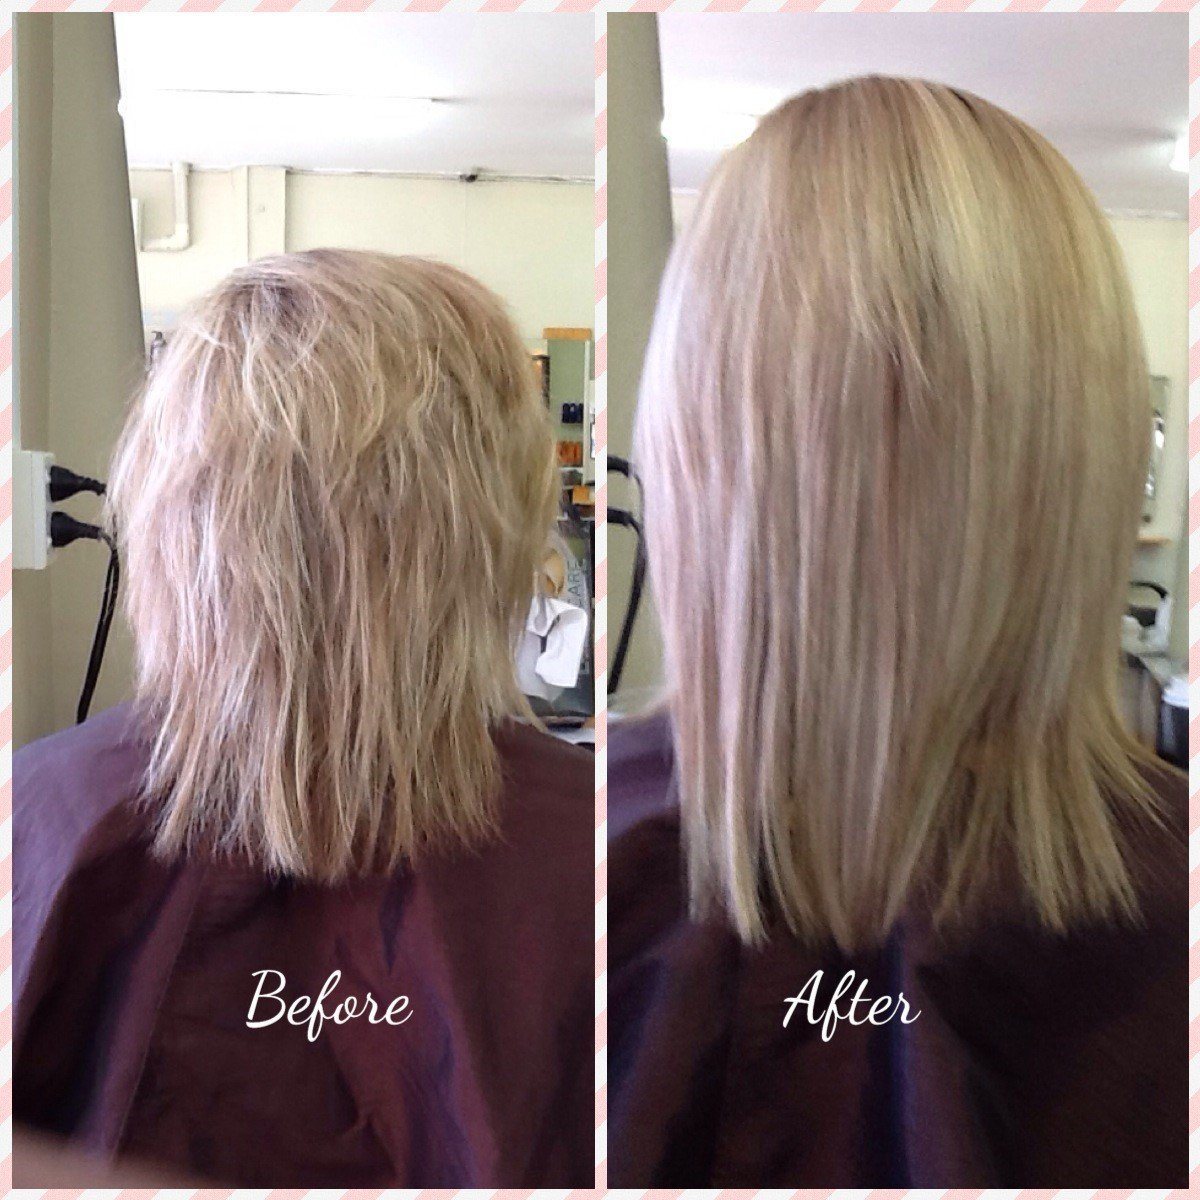 This Keratin smoothing was done by our Senior Jodi Hill